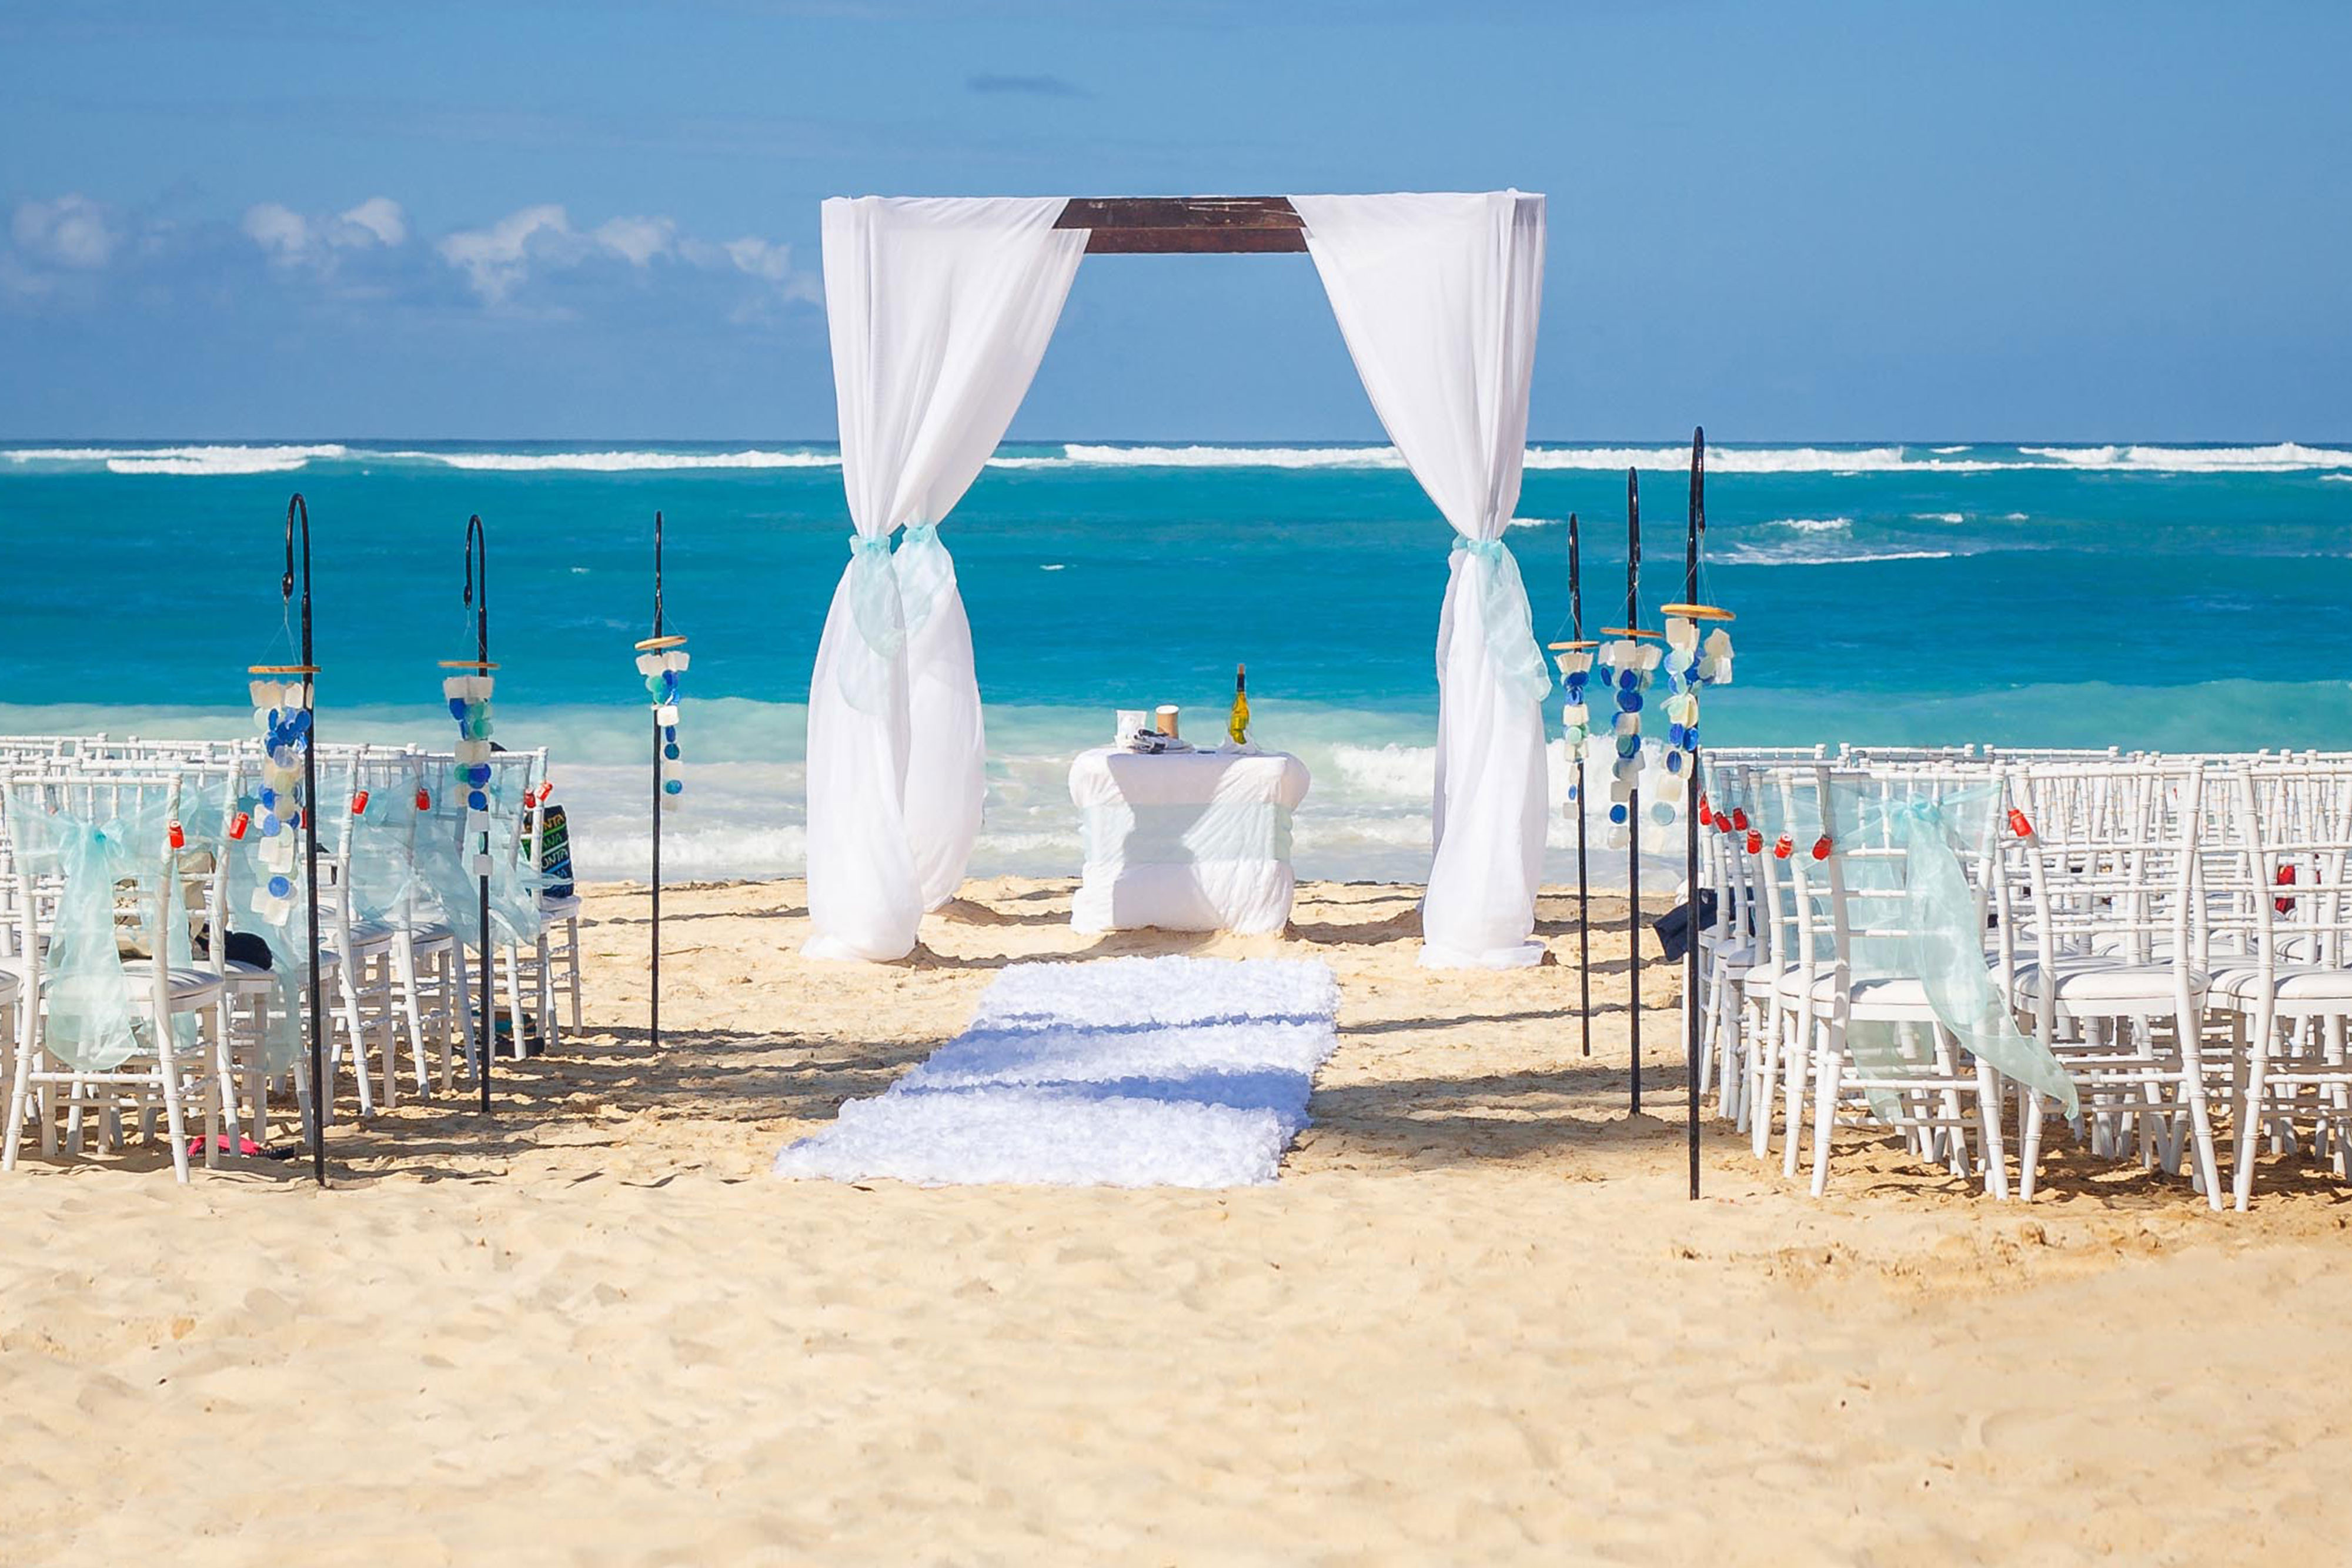 Wedding Venue With Accommodations On Site In Cocoa Beach - Ceremony site on the beach